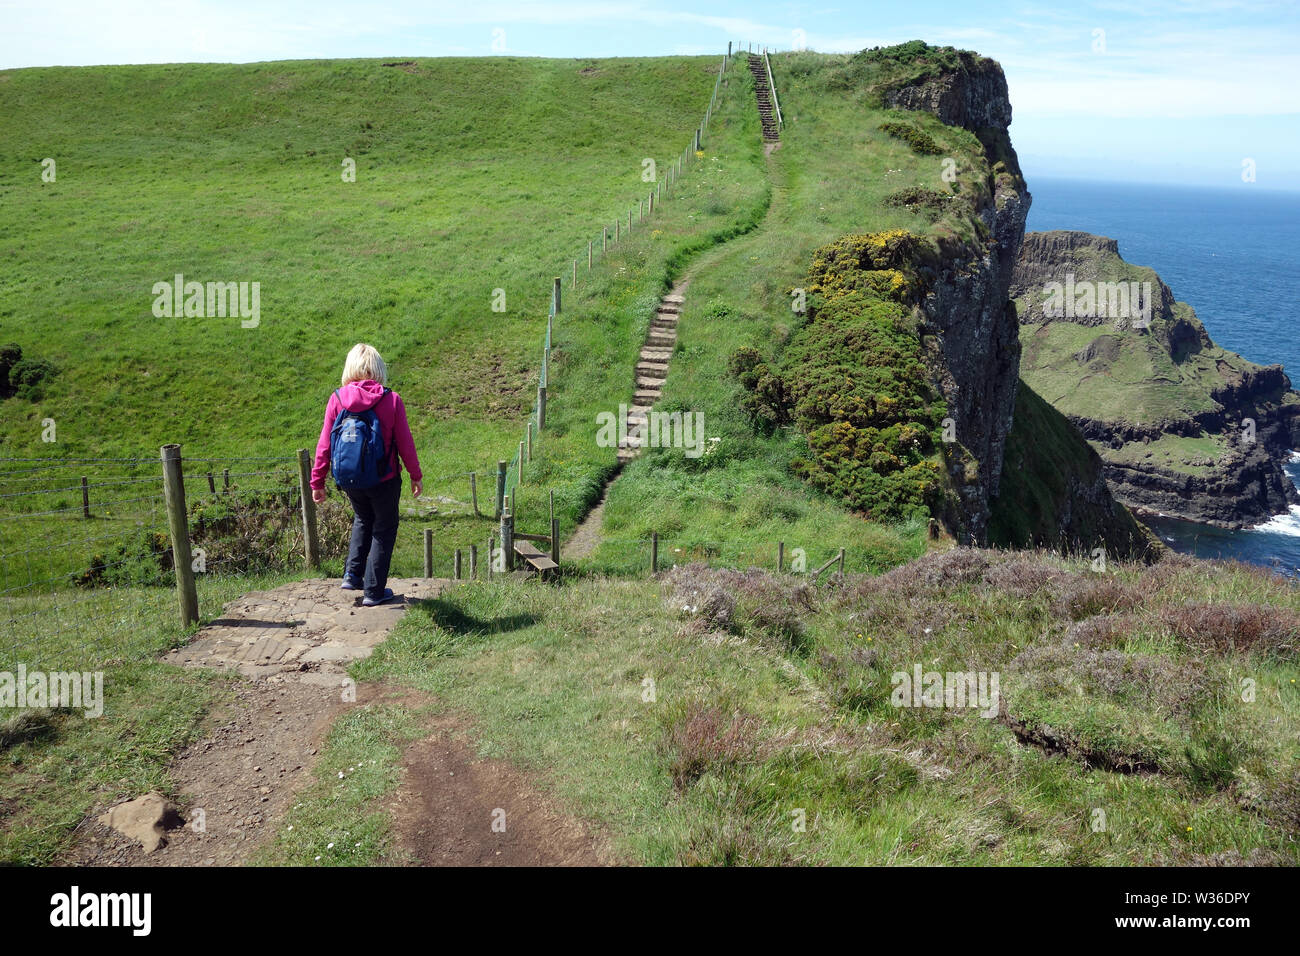 Woman Walking Towards Steps on the Giant's Causeway Coastal Path, County Antrim, Northern Ireland, UK Stock Photo